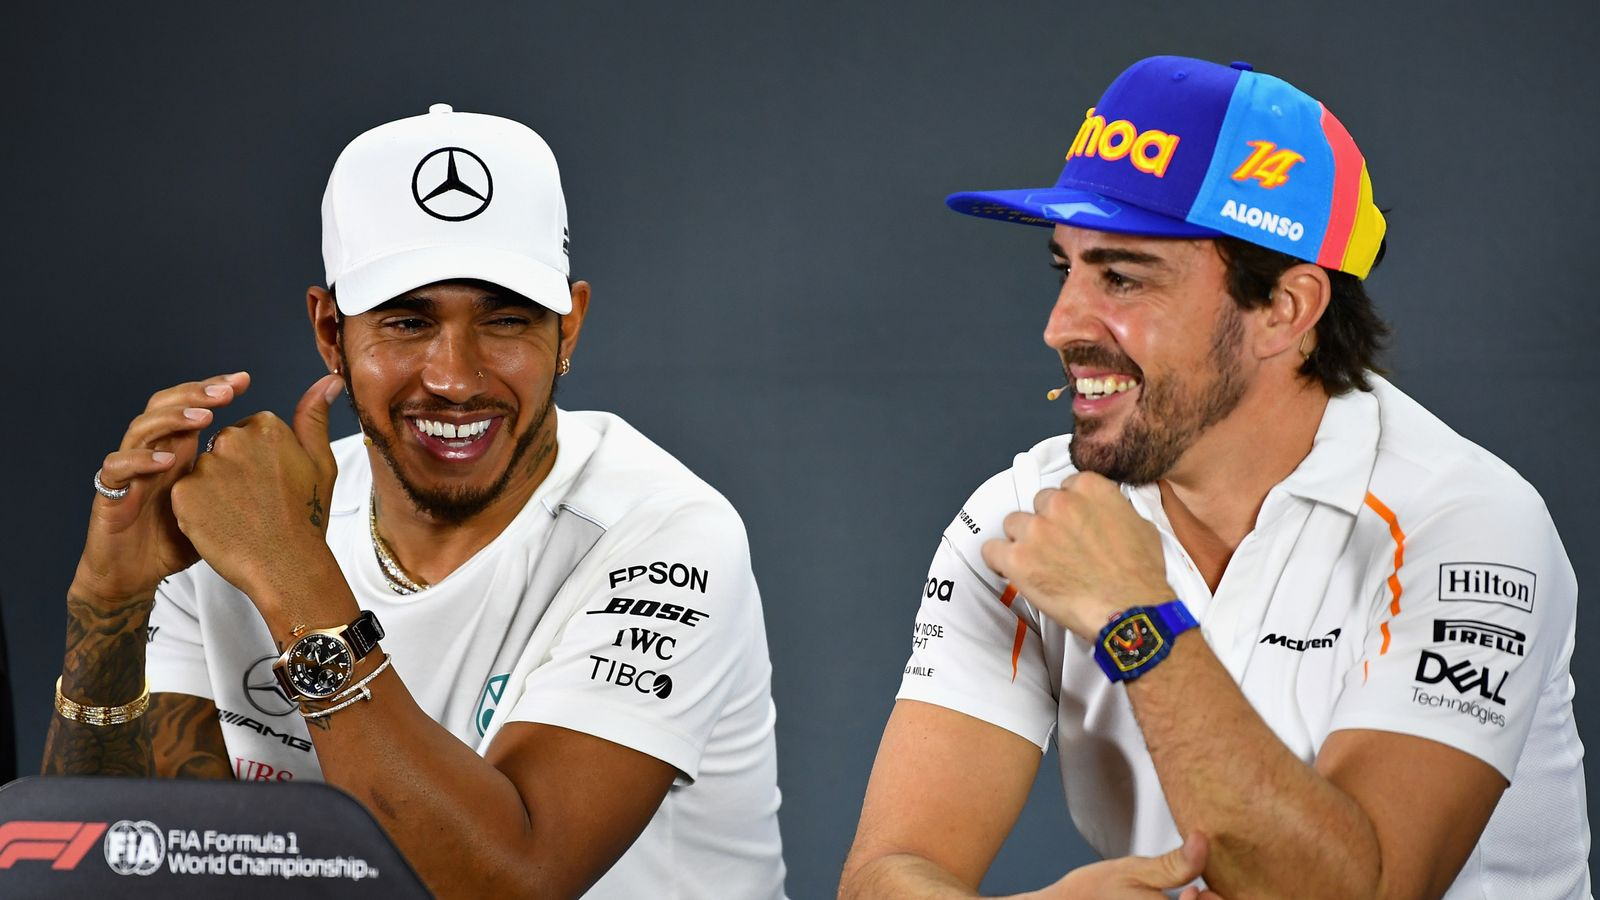 Lewis Hamilton on congratulatory texts from Fernando Alonso and Ron Dennis - Sky Sports